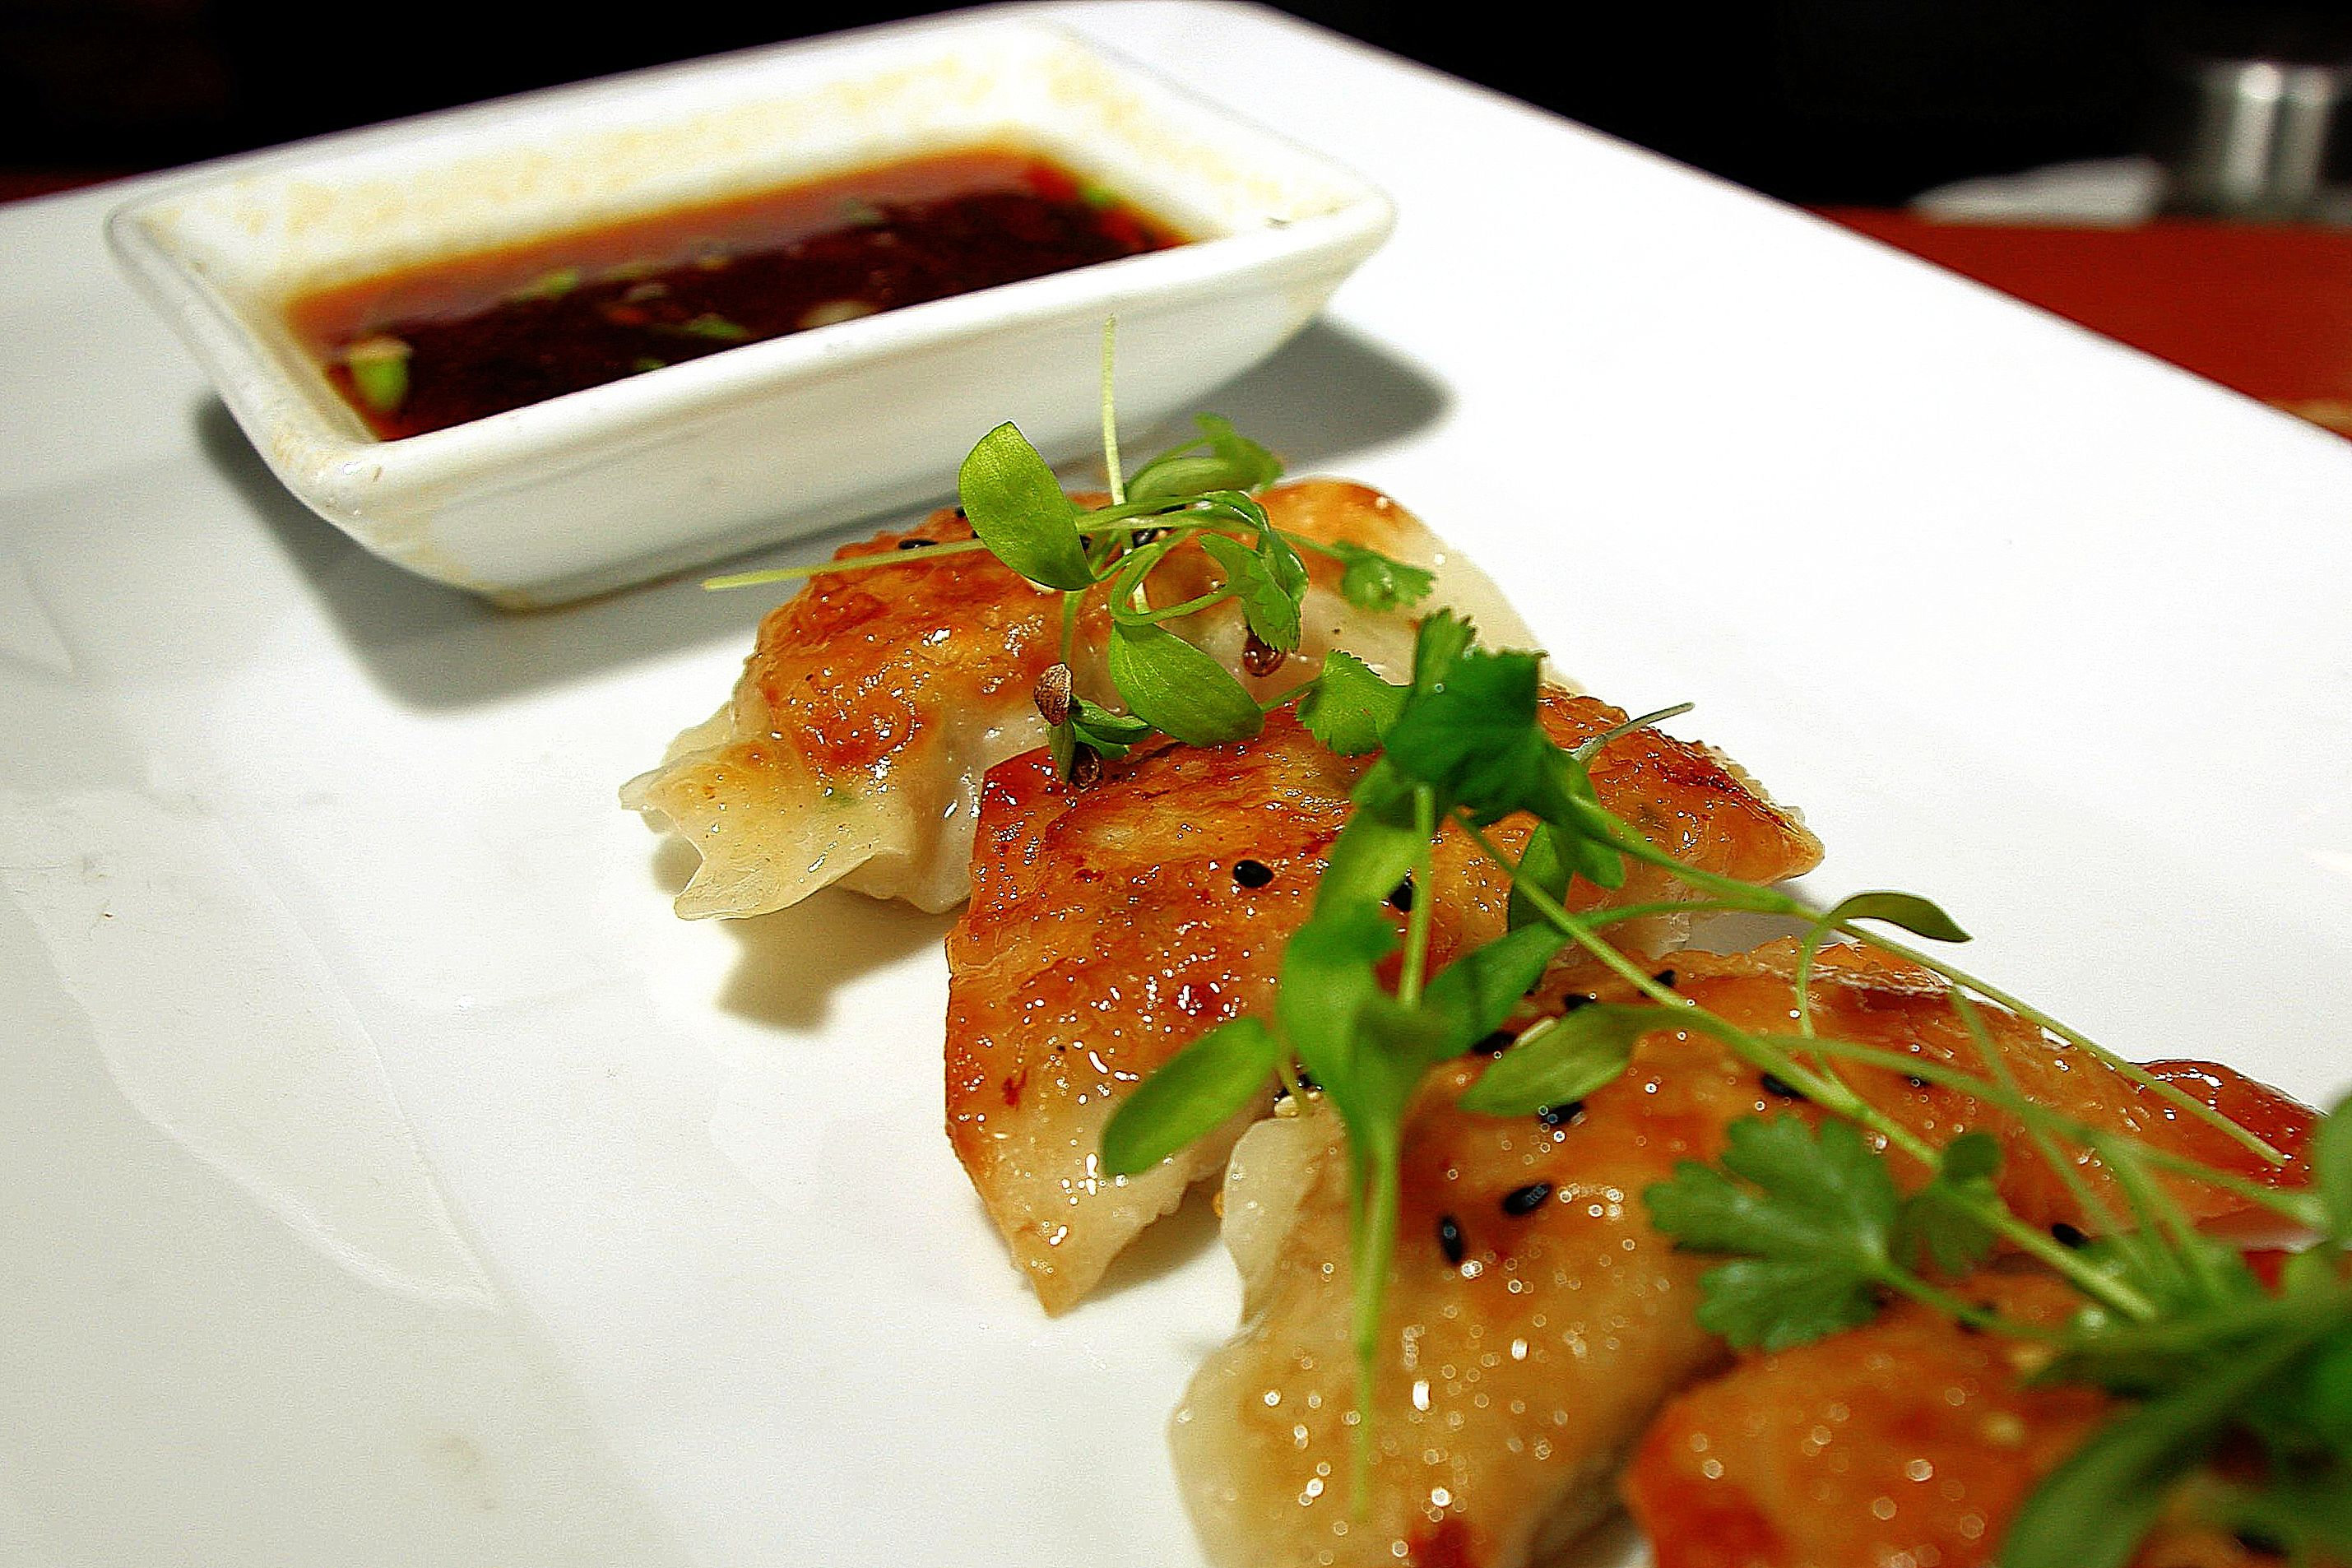 Chicken pot stickers | Recipes | Pinterest